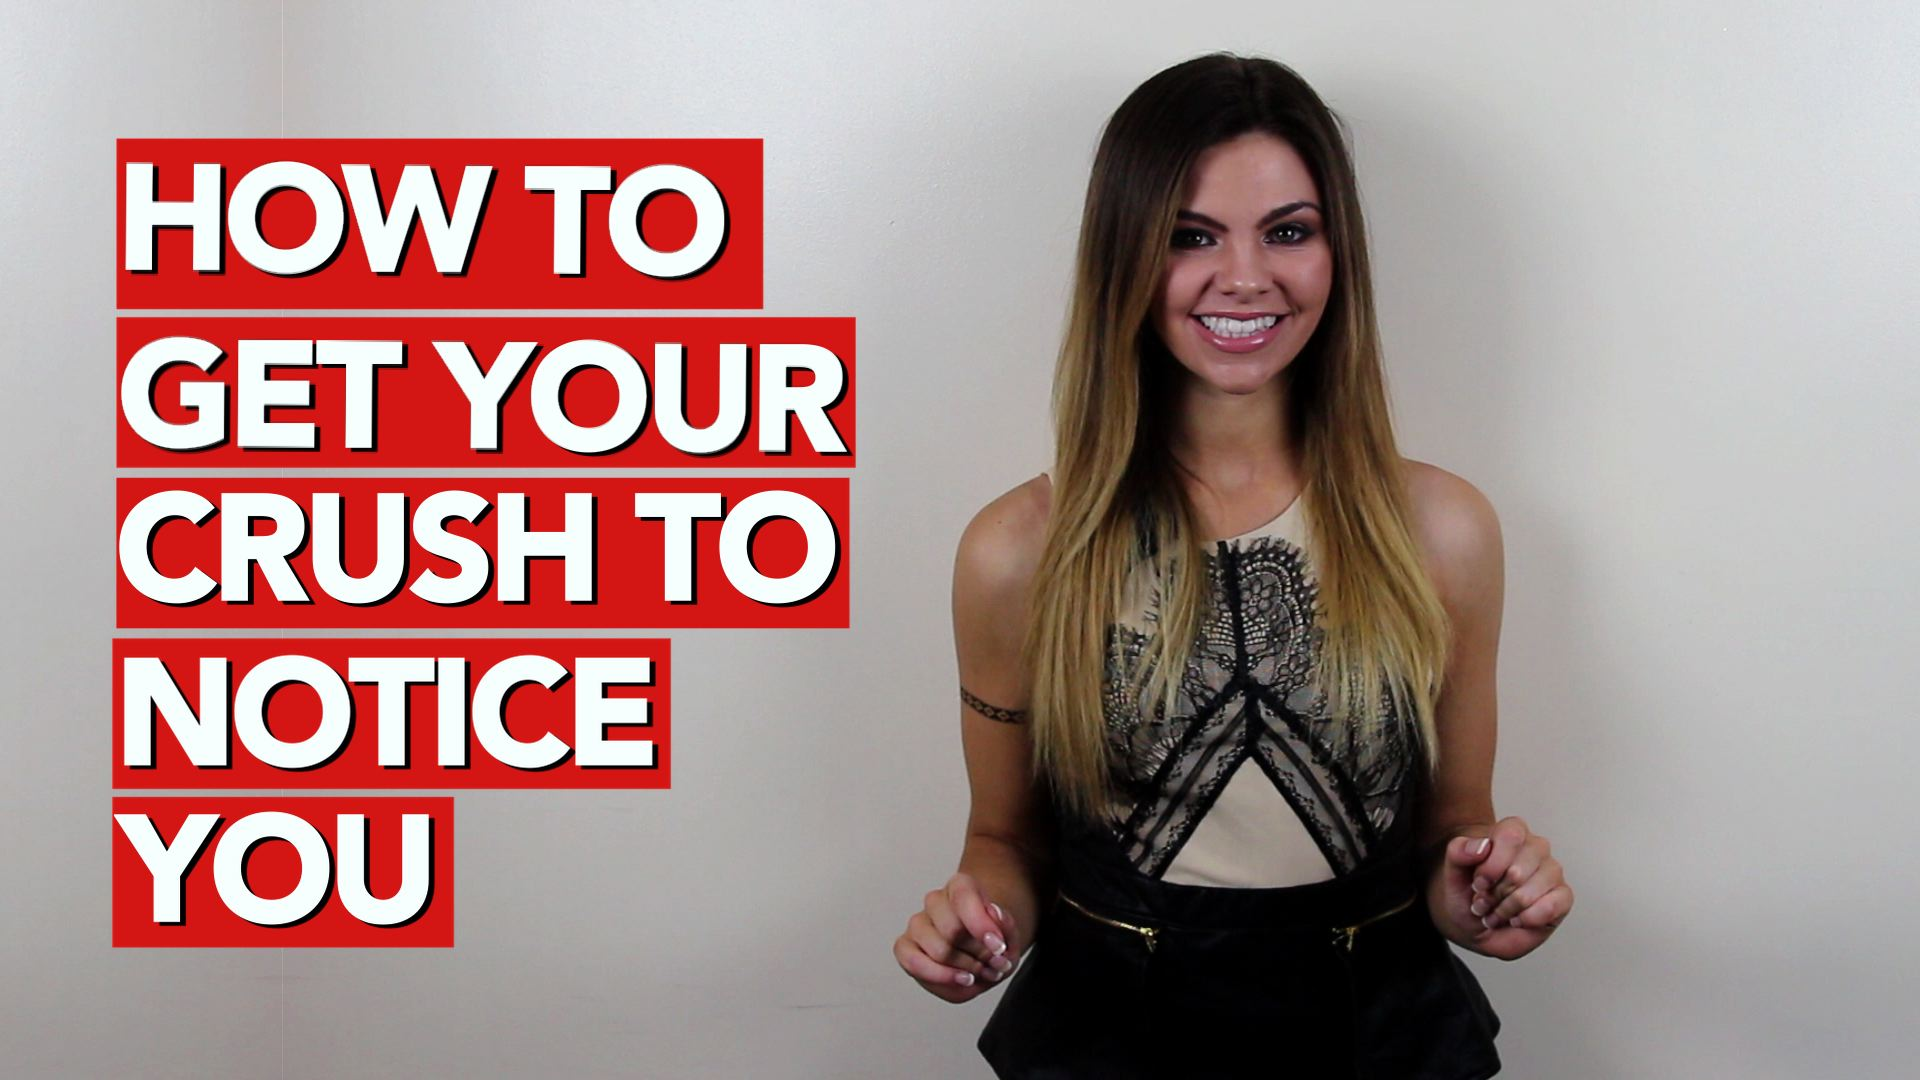 How to get your crush to notice you